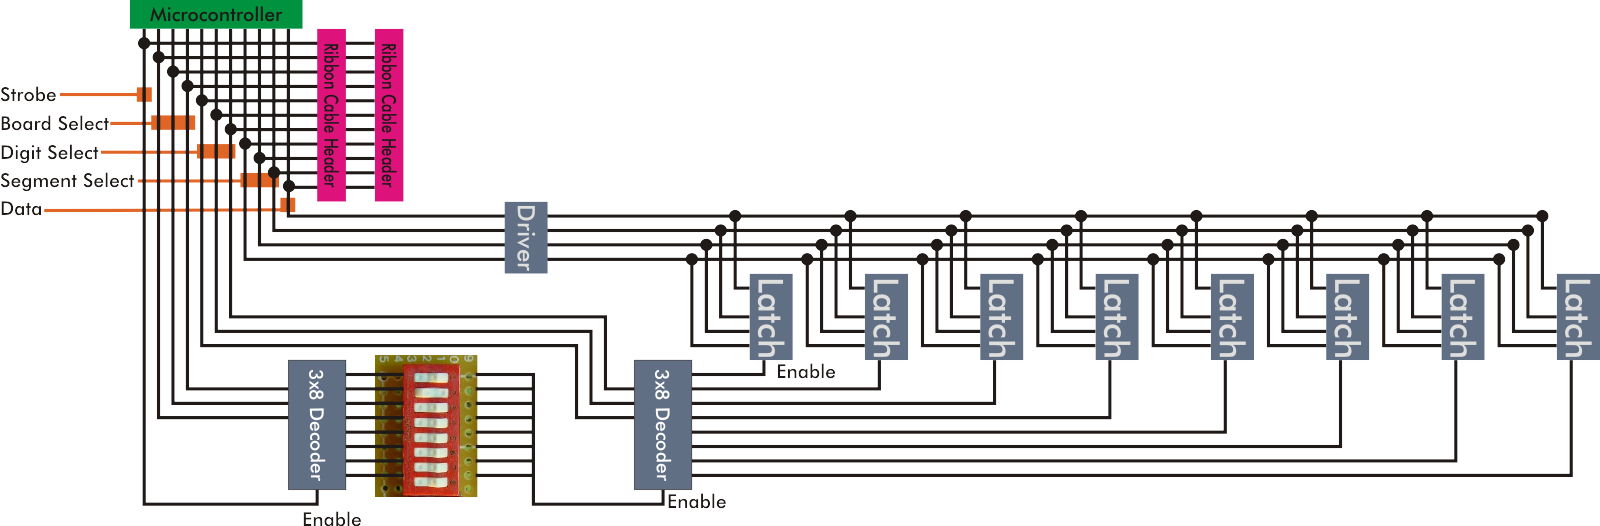 Fake Avionics For A Rocketship Treehouse Circuit Breaker Panel Diagram Besides 7 Segment Display On The Above Shows Latches But Doesnt Depict Led Or Resistors Attached To Each Latch Also It My Cheesy Board Select Method